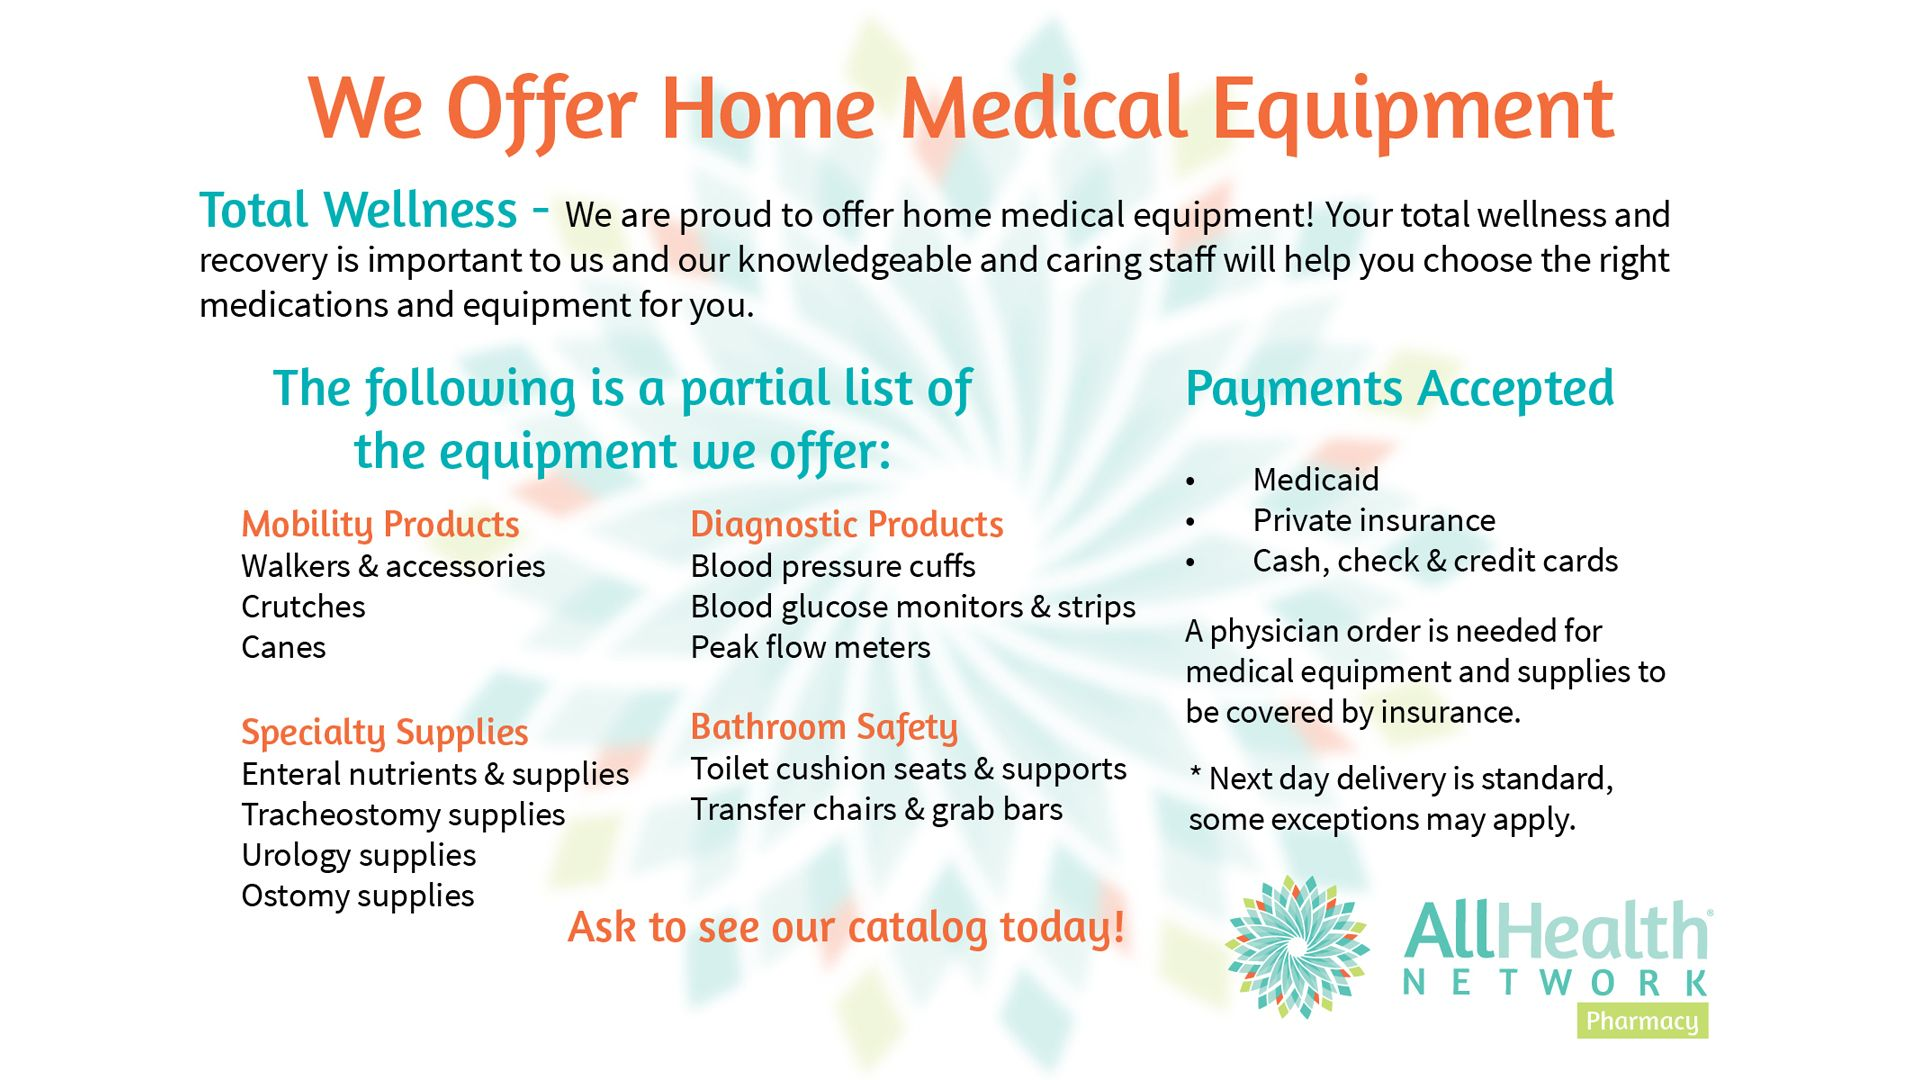 Medical-Equipment-Flyer.jpg